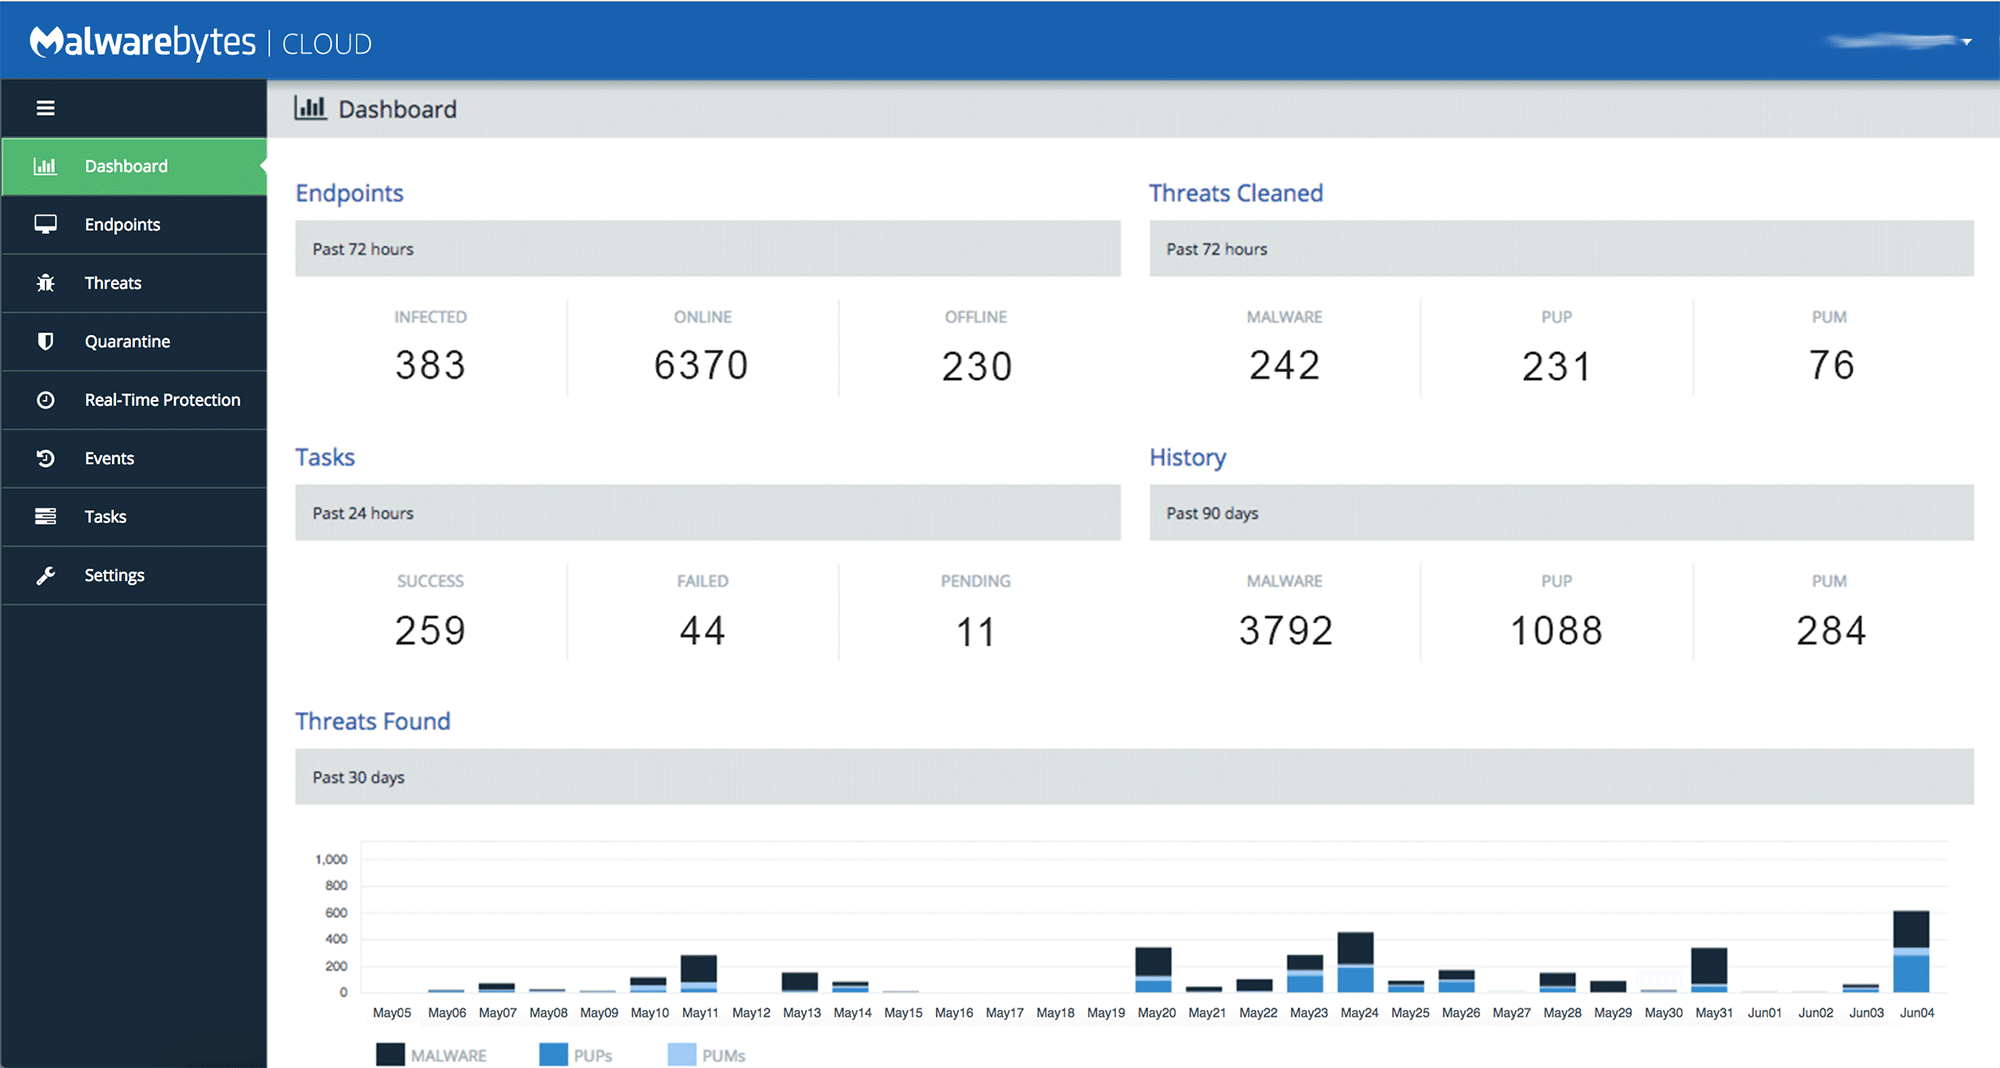 Malwarebytes cloud platform Dashboard